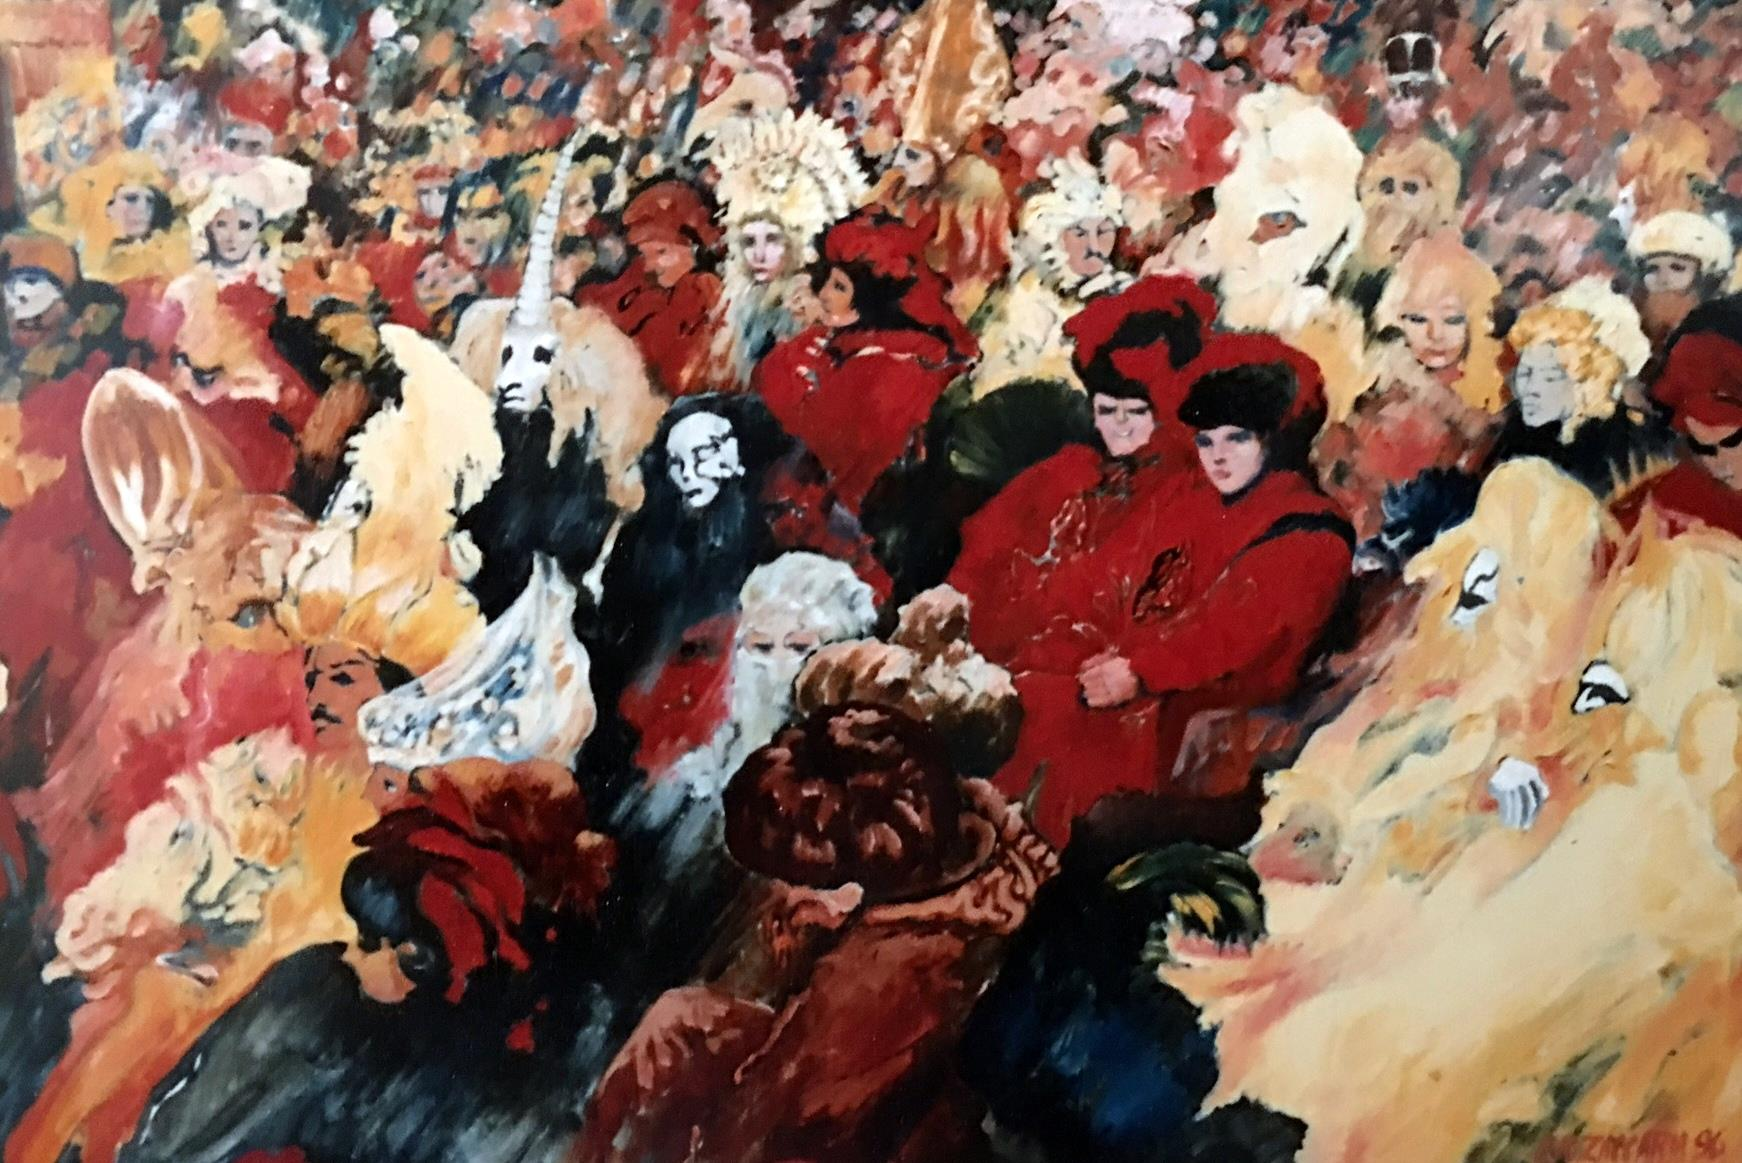 Carnival, oil painting, cosimo zaccaria artist, Venice Carnival painting,